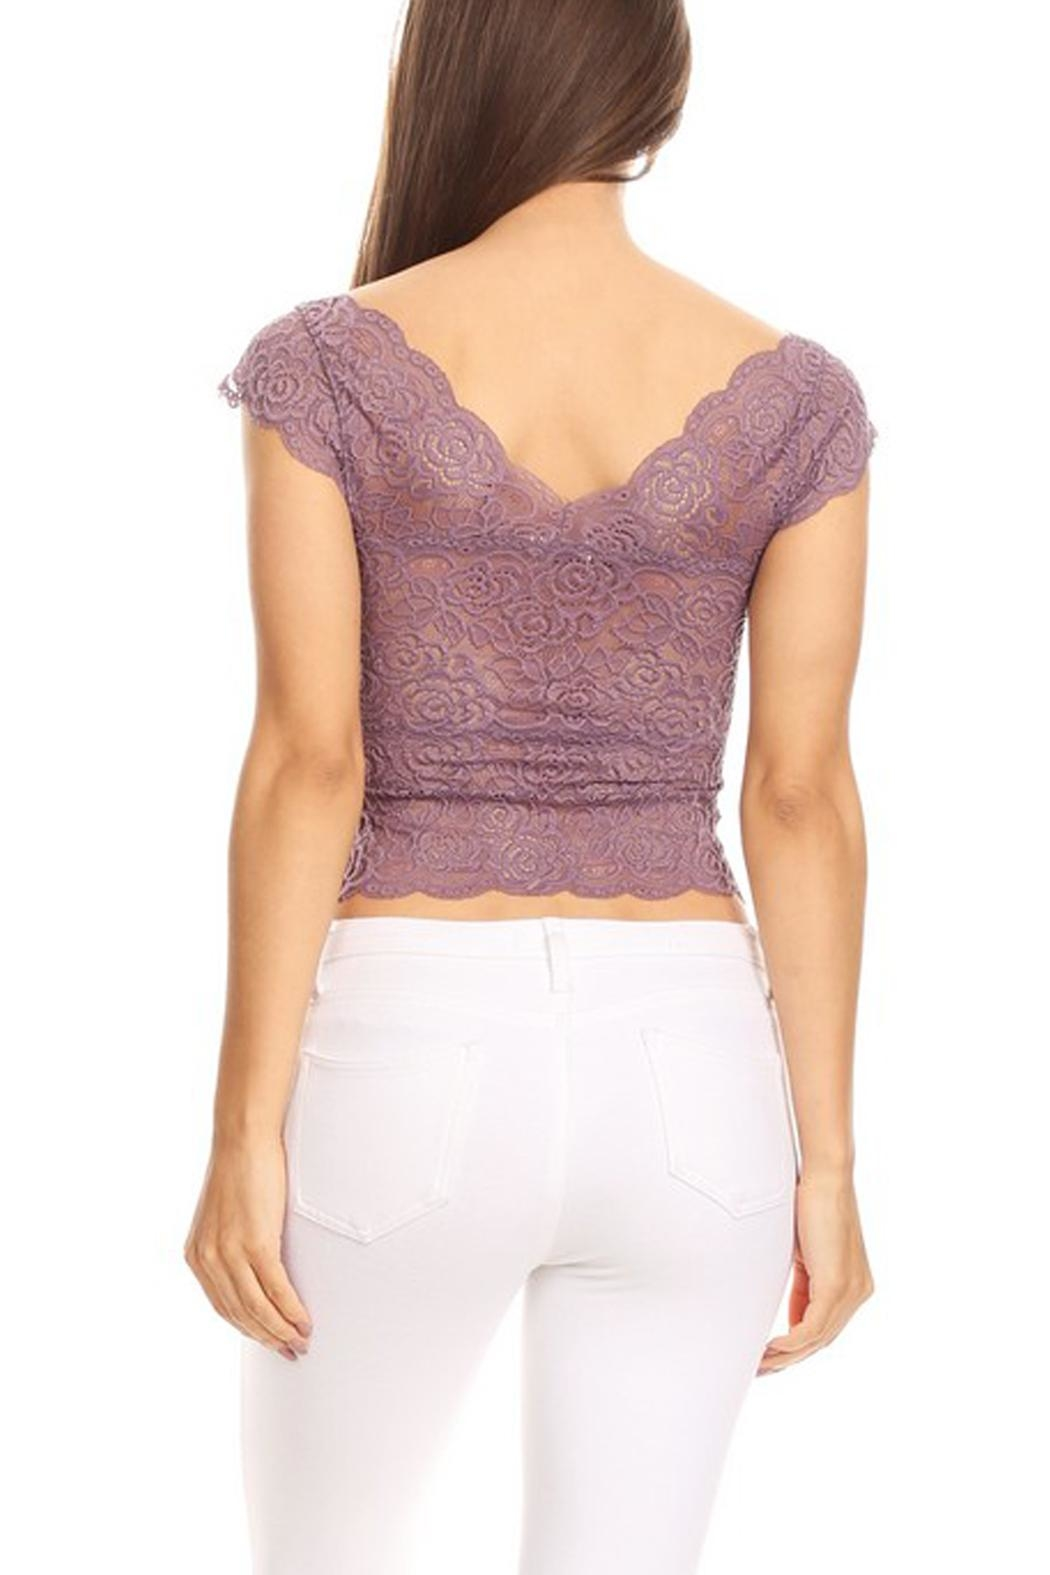 JChronicles Lace Crop Top - Back Cropped Image